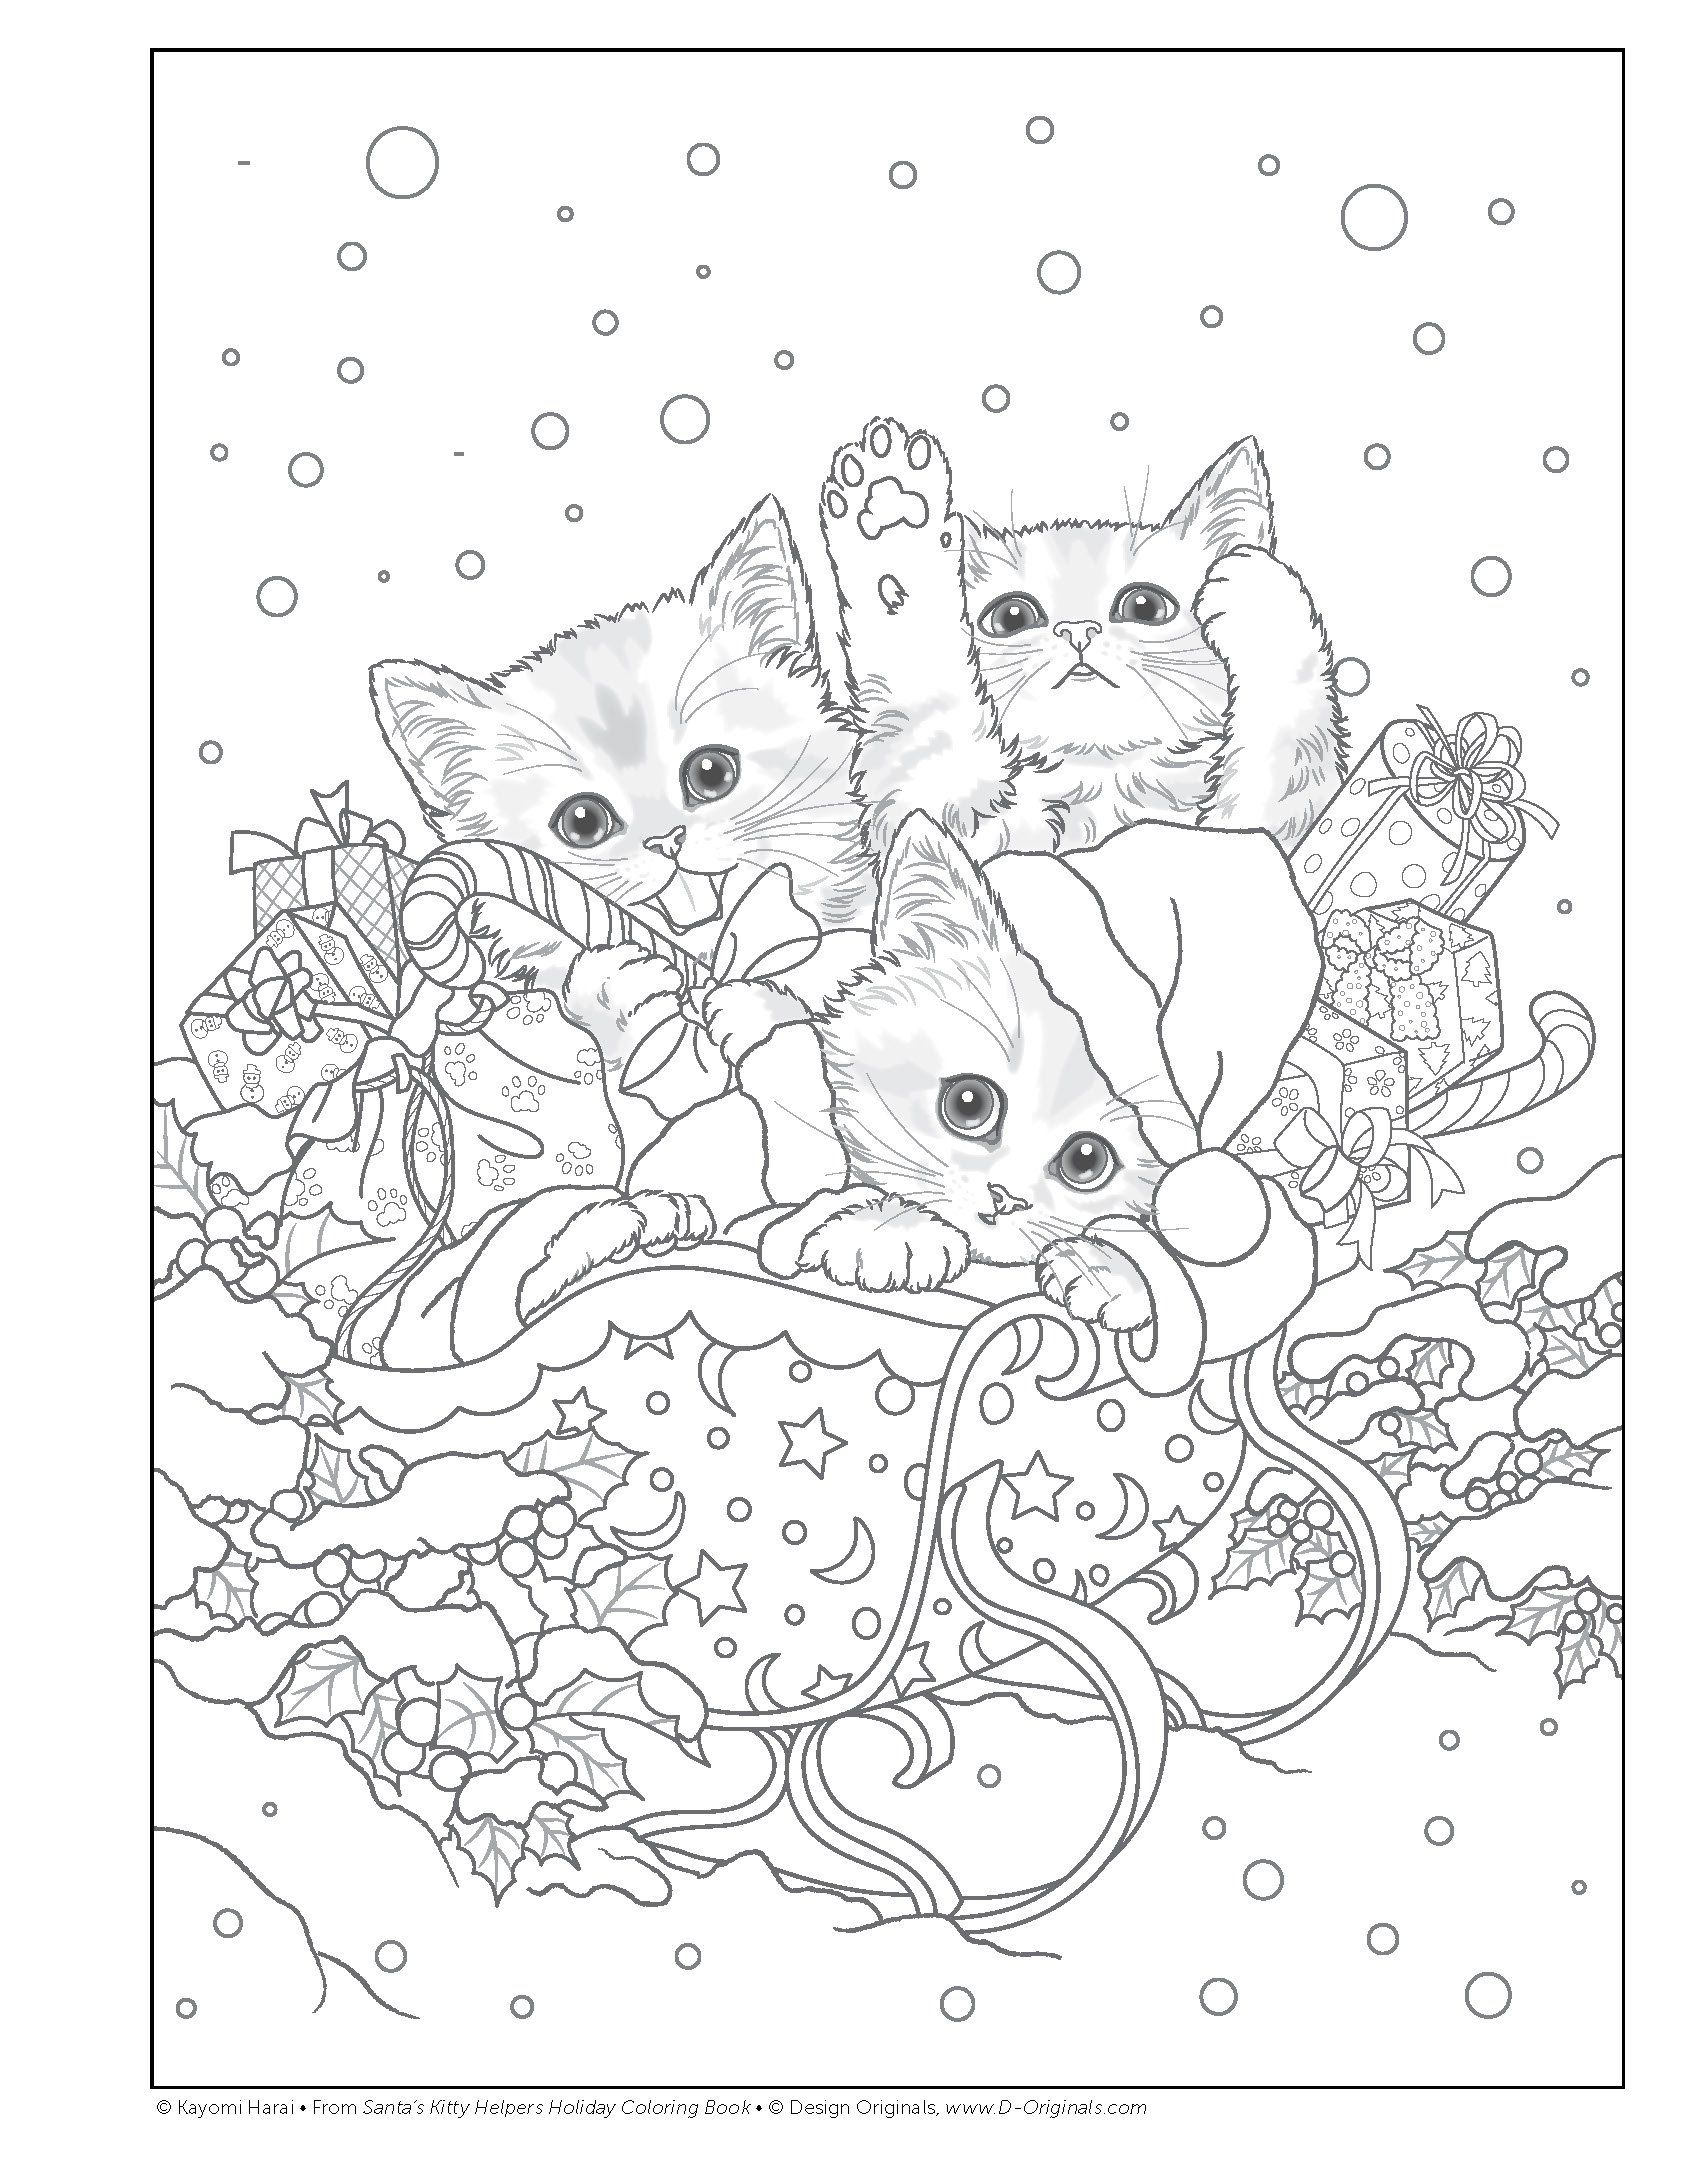 Santa S Kitty Helpers Holiday Coloring Book Design Originals Kayomi Harai 0023863059121 Amazon C Christmas Coloring Books Cat Coloring Page Coloring Pages